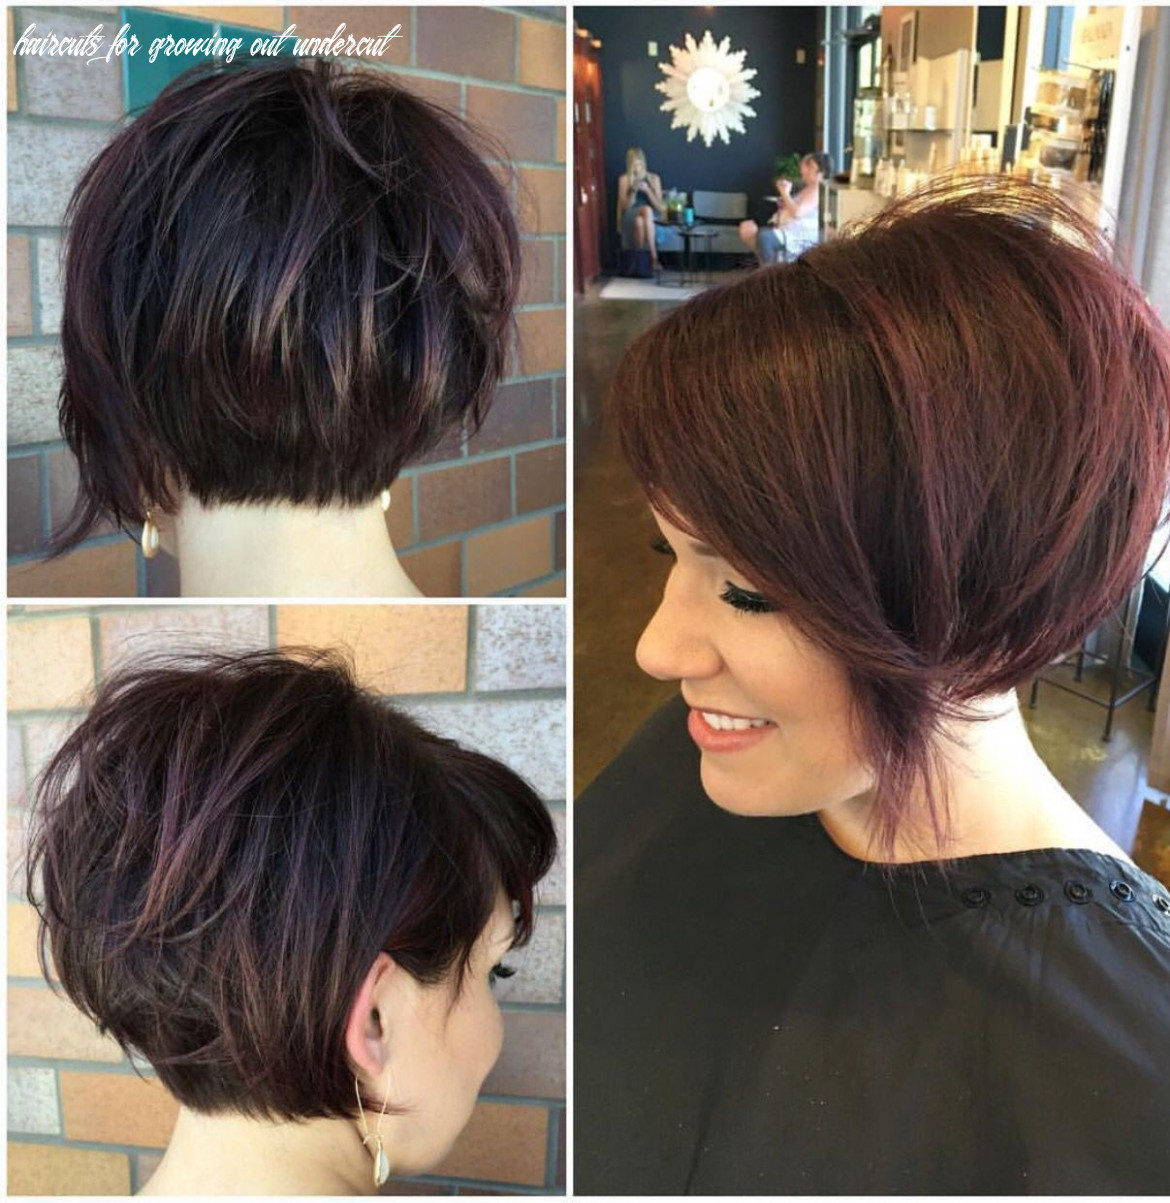 Pin on hair ❤️ haircuts for growing out undercut